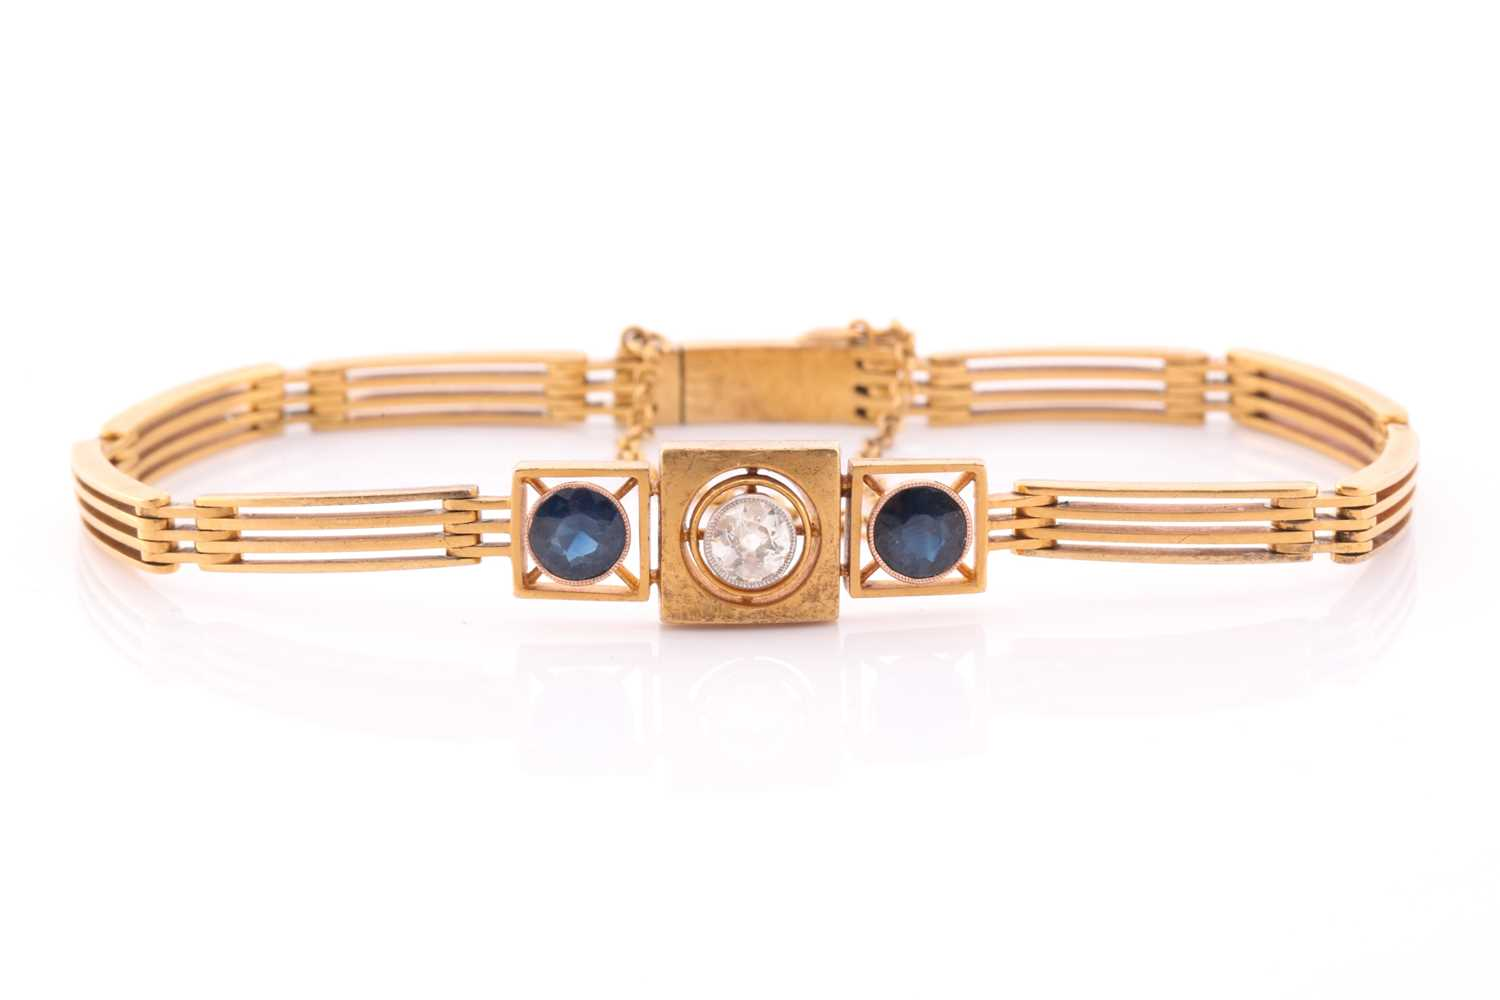 A yellow metal, diamond, and sapphire bracelet, set with a round-cut diamond of approximately 0.33